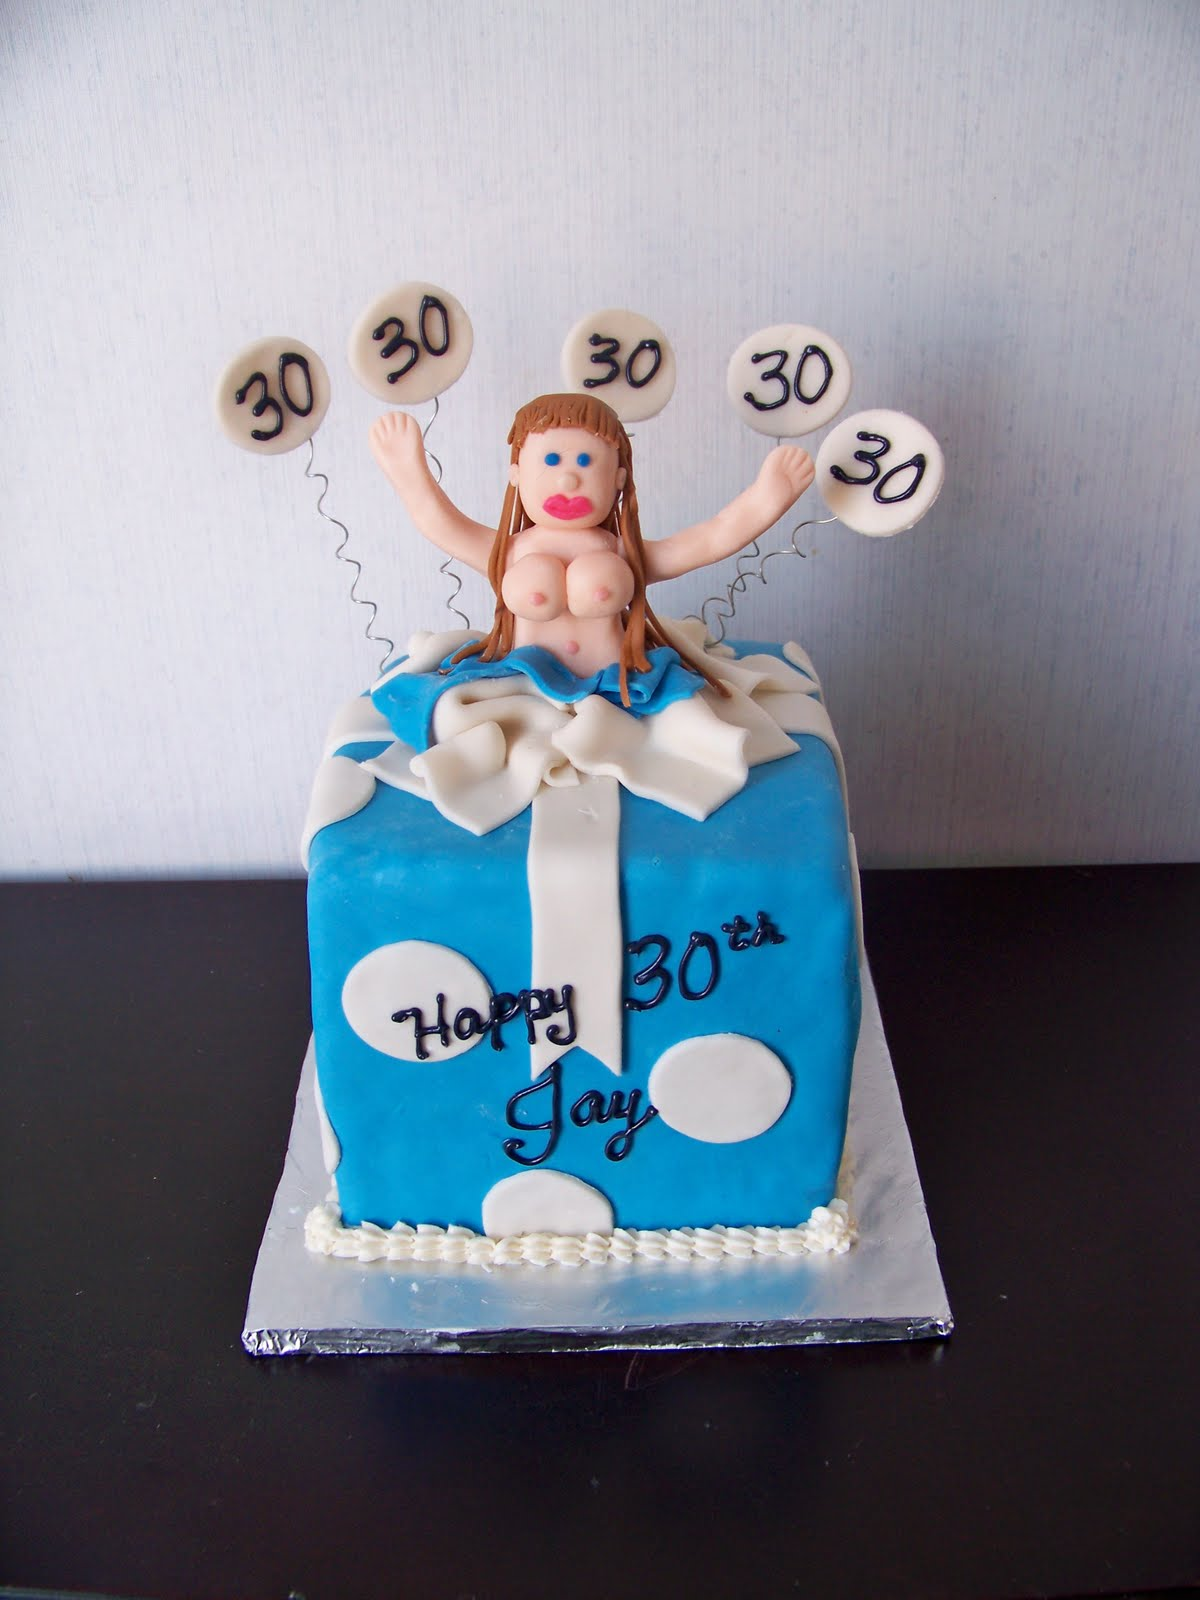 The Tasty Treats In Life Newest Cakes